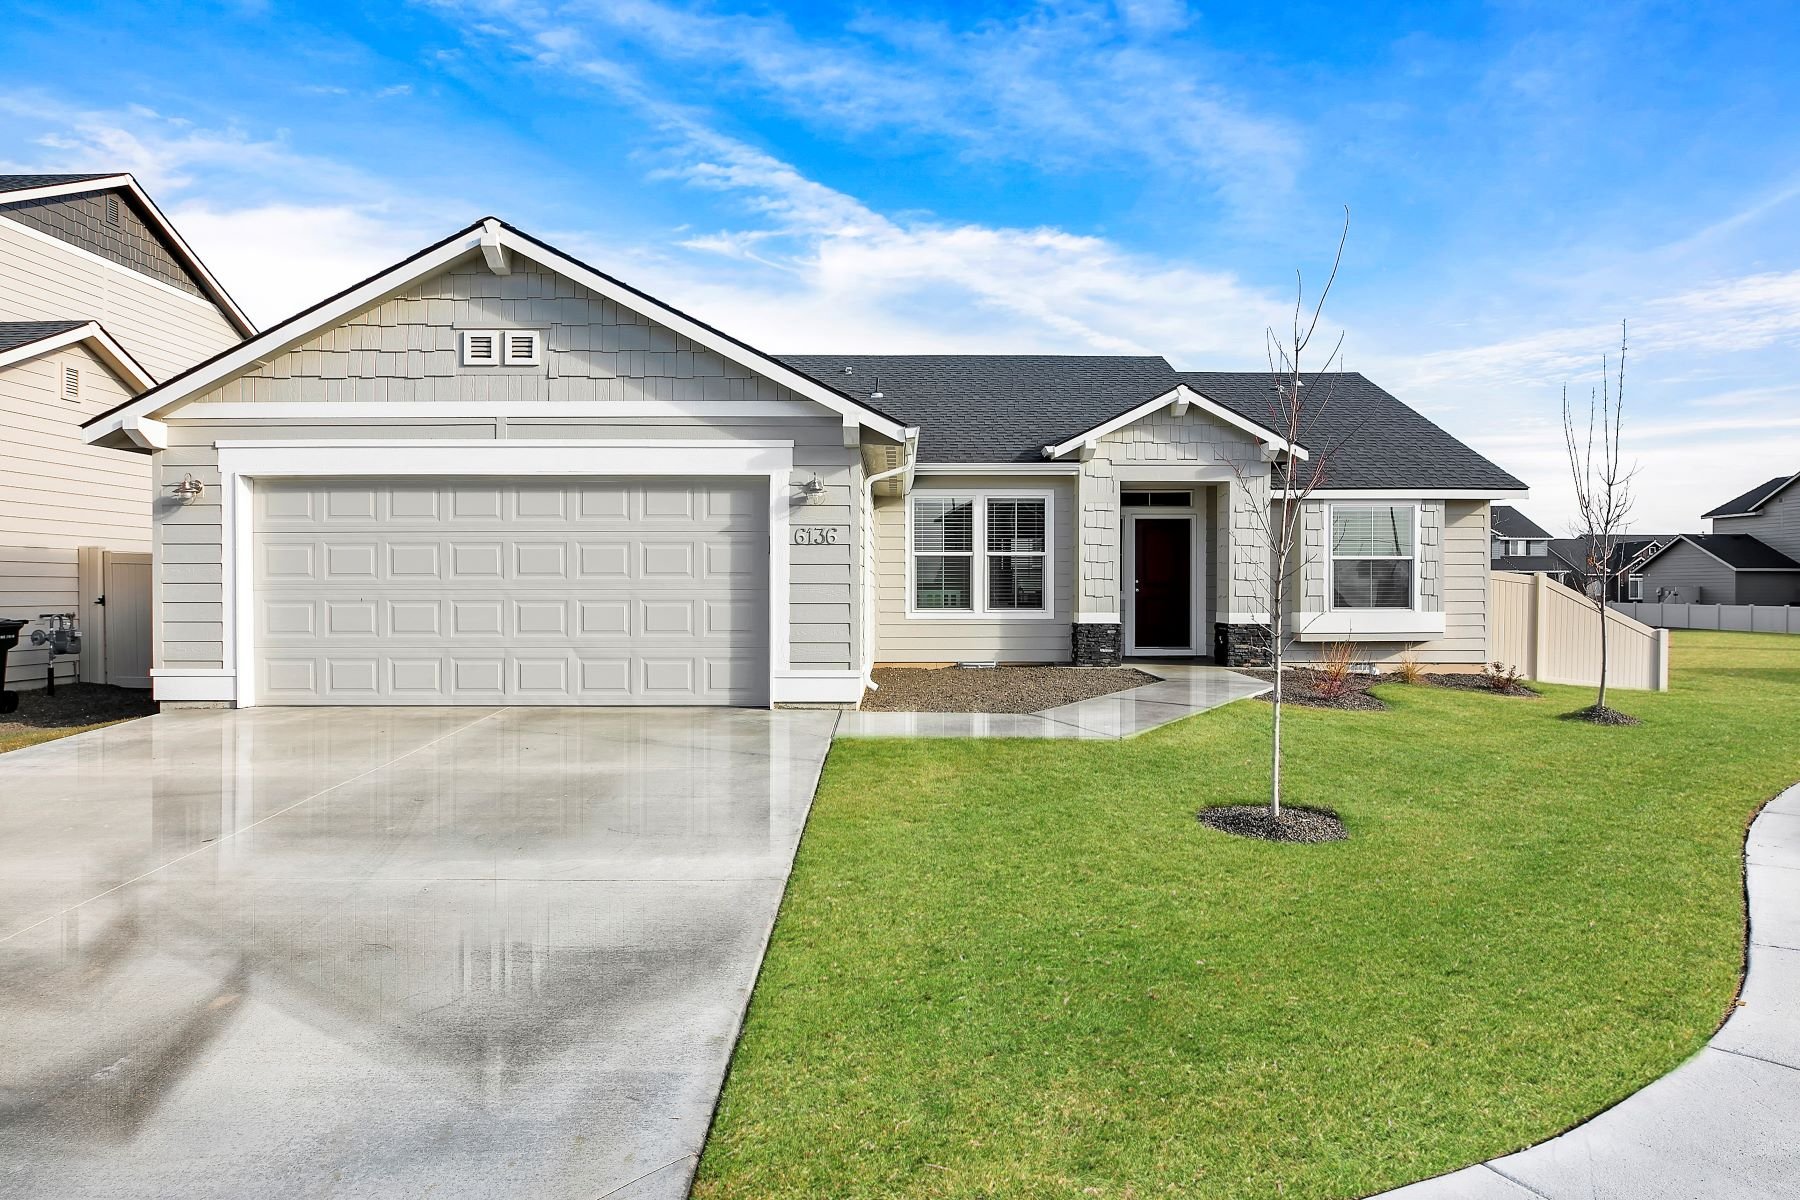 Single Family Homes for Sale at 6136 Seawind Place, Meridian 6136 N Seawind Pl Meridian, Idaho 83646 United States